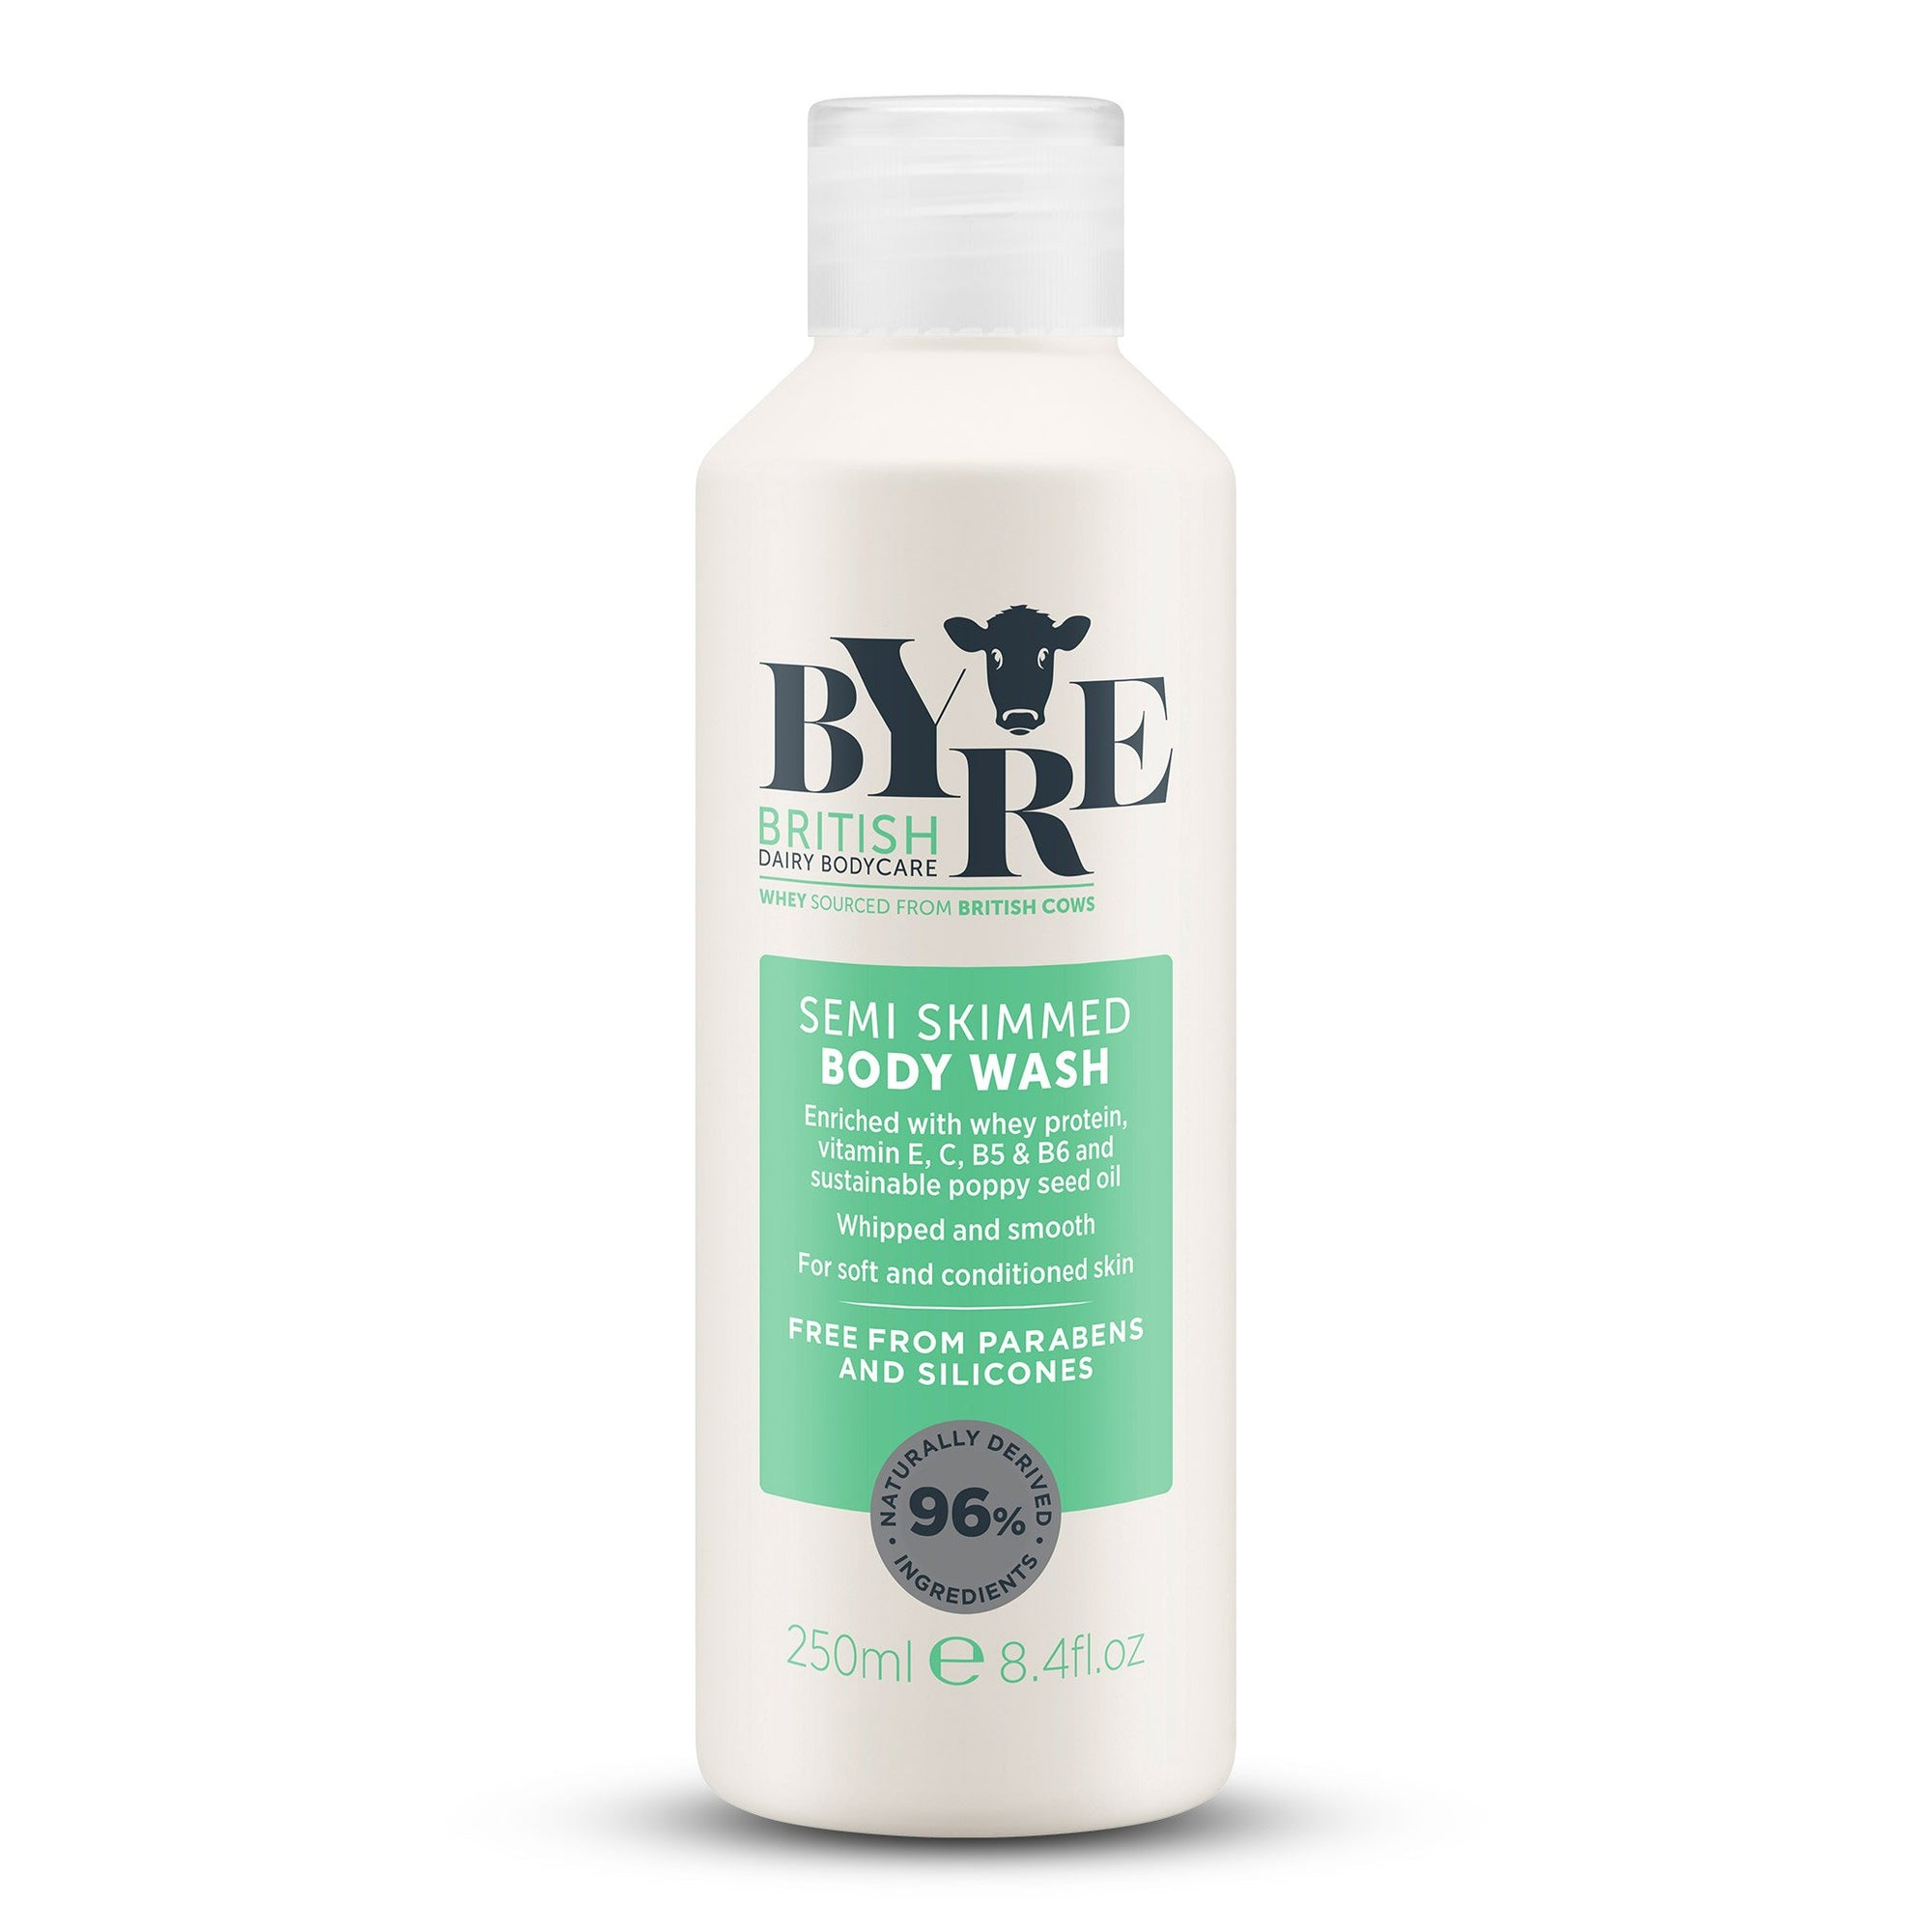 Byre Body Wash Semi Skimmed (250ml / 8.4fl.oz)